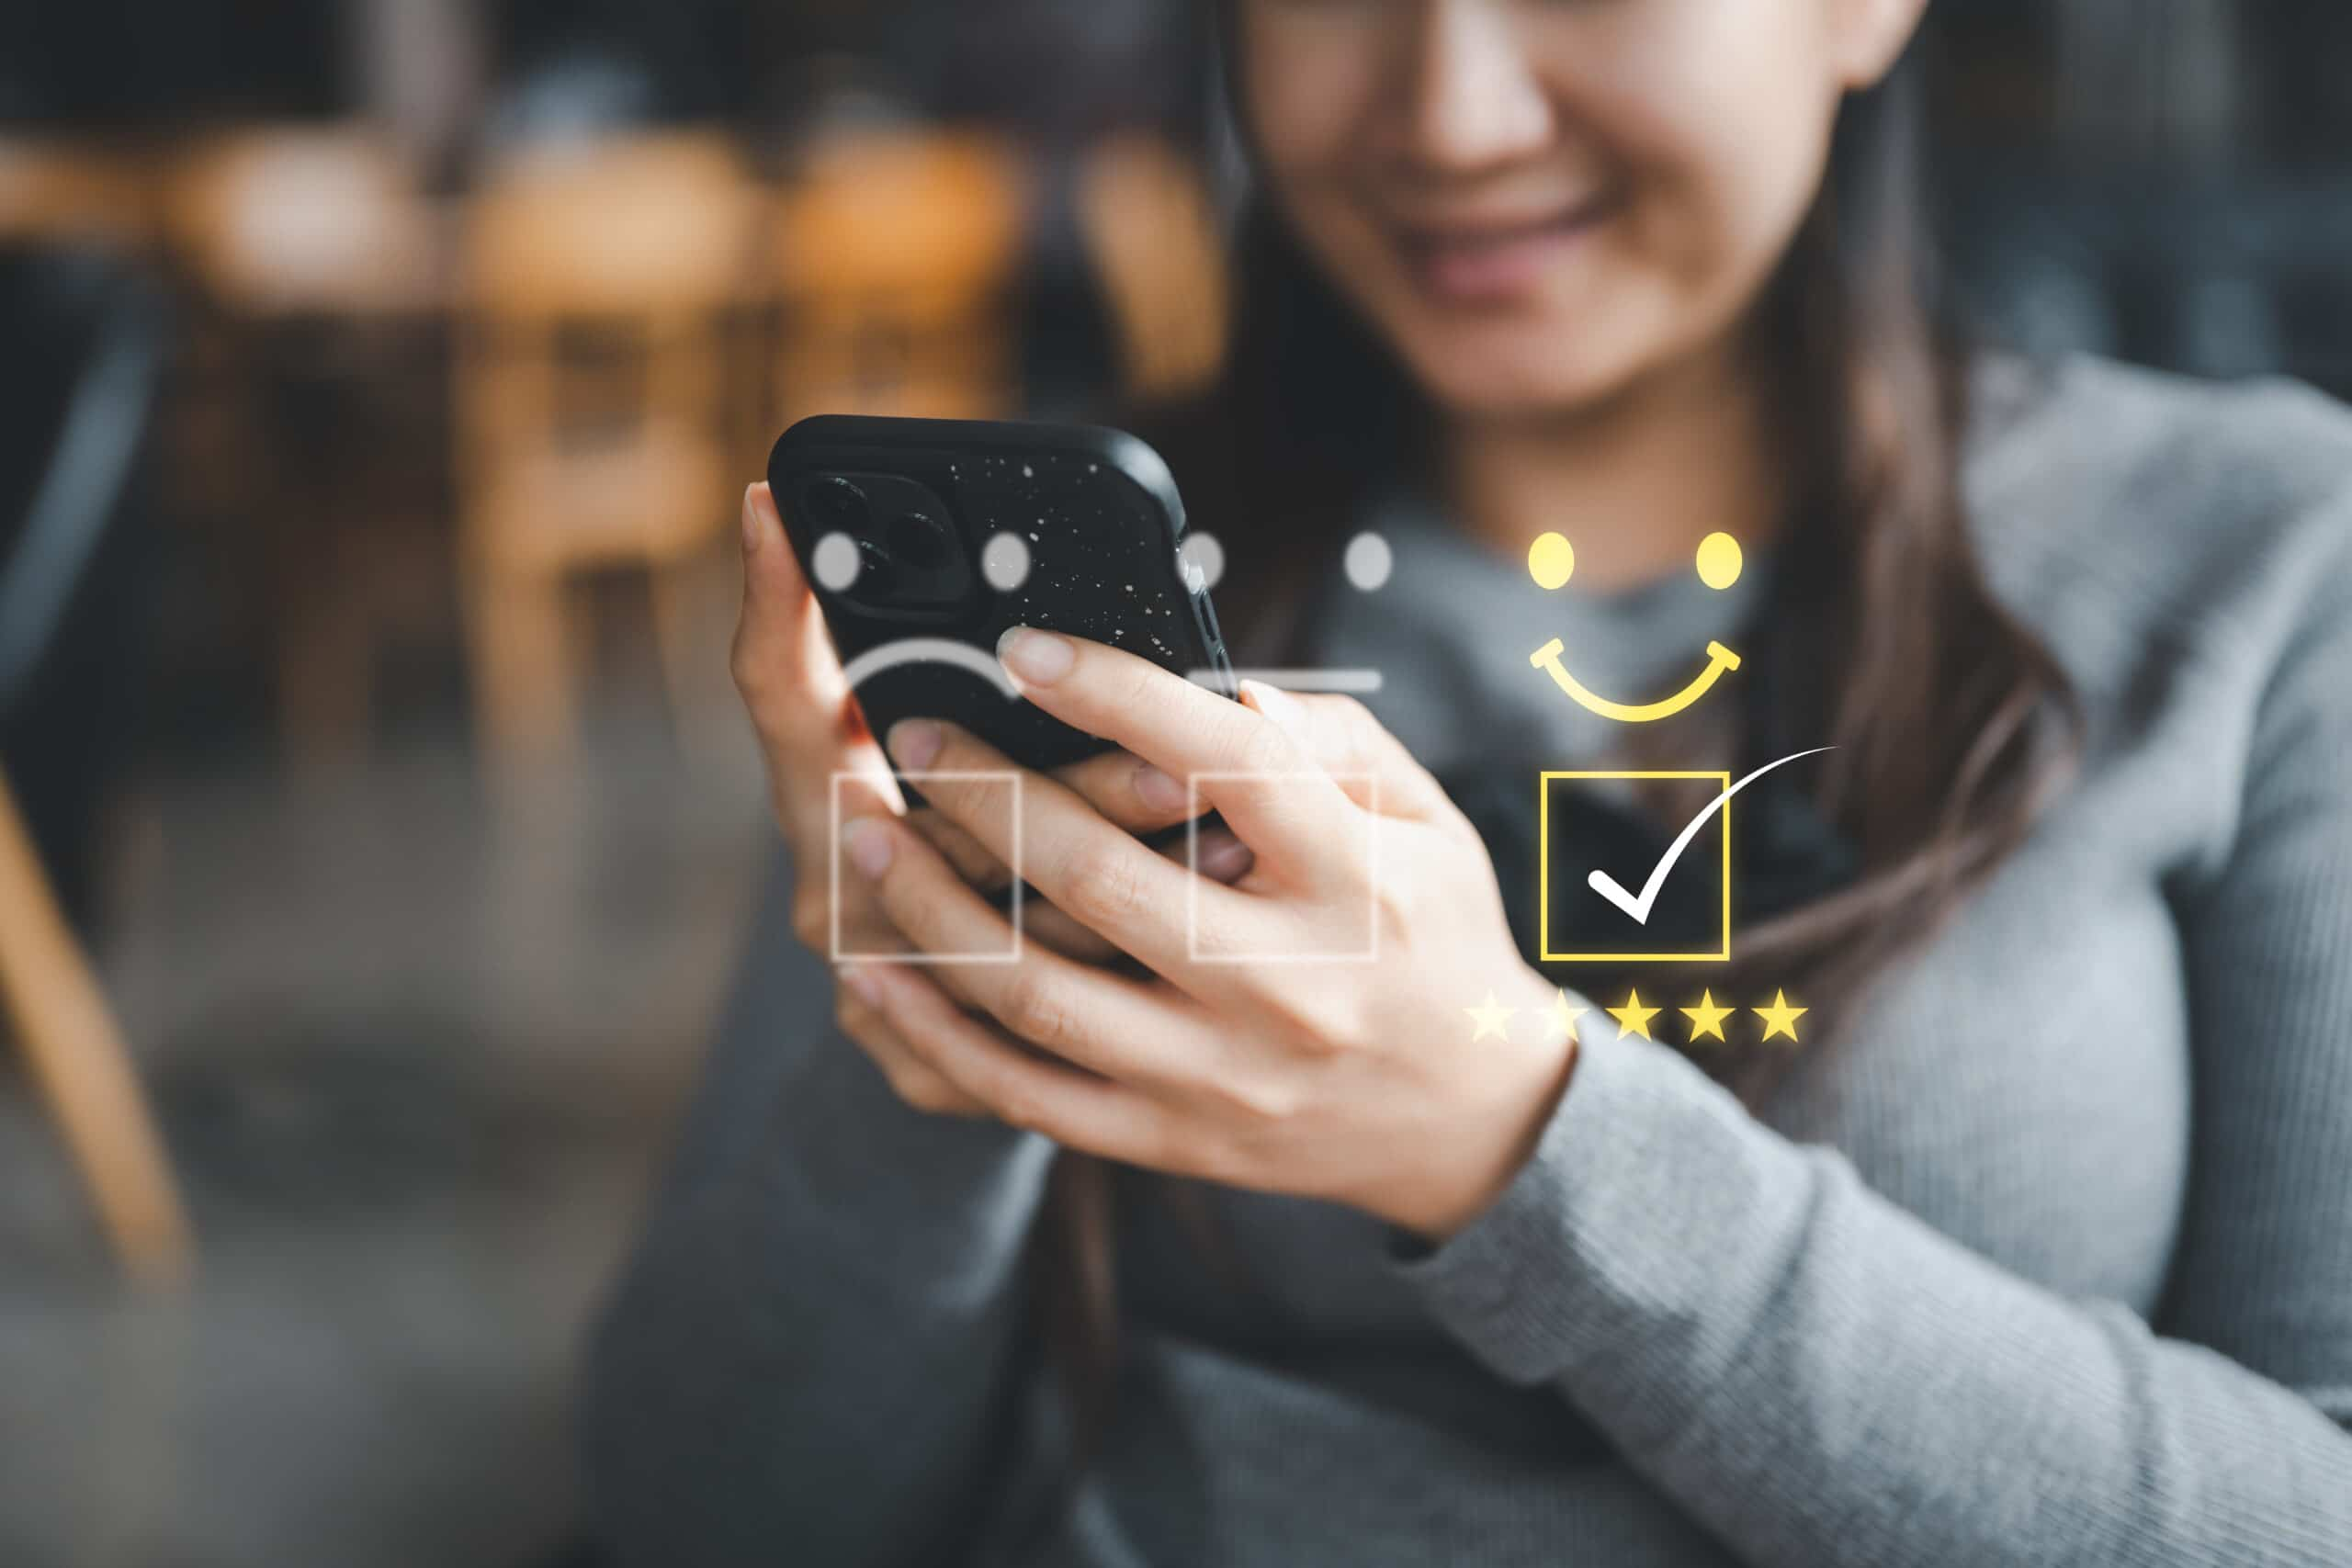 Customer service evaluation - a customer evaluates her contact centre experience on her smartphone